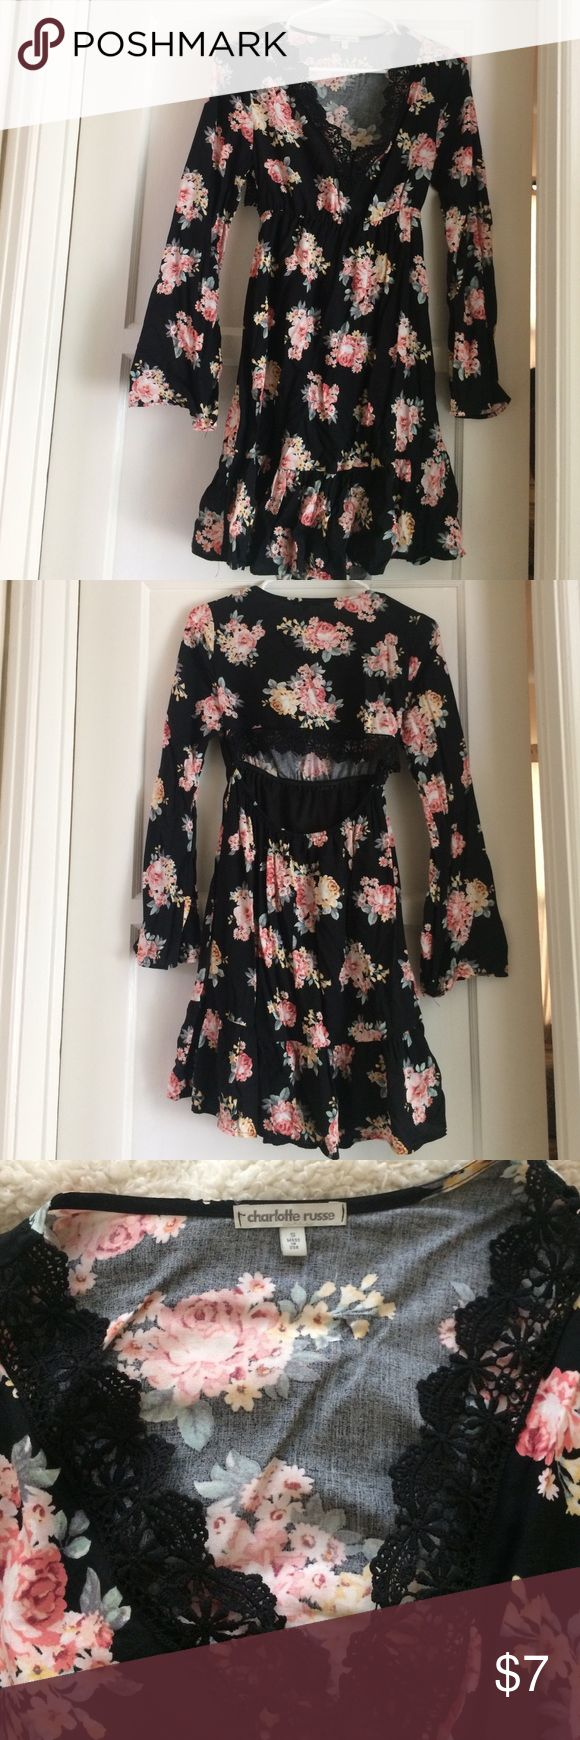 Charlotte Russe dress 👗 Wore once last month for a couple of hours, like new. Got it for 25+tax . Long flowy sleeves, low V, displays back but can be covered with jacket ❤️ Charlotte Russe Dresses Midi